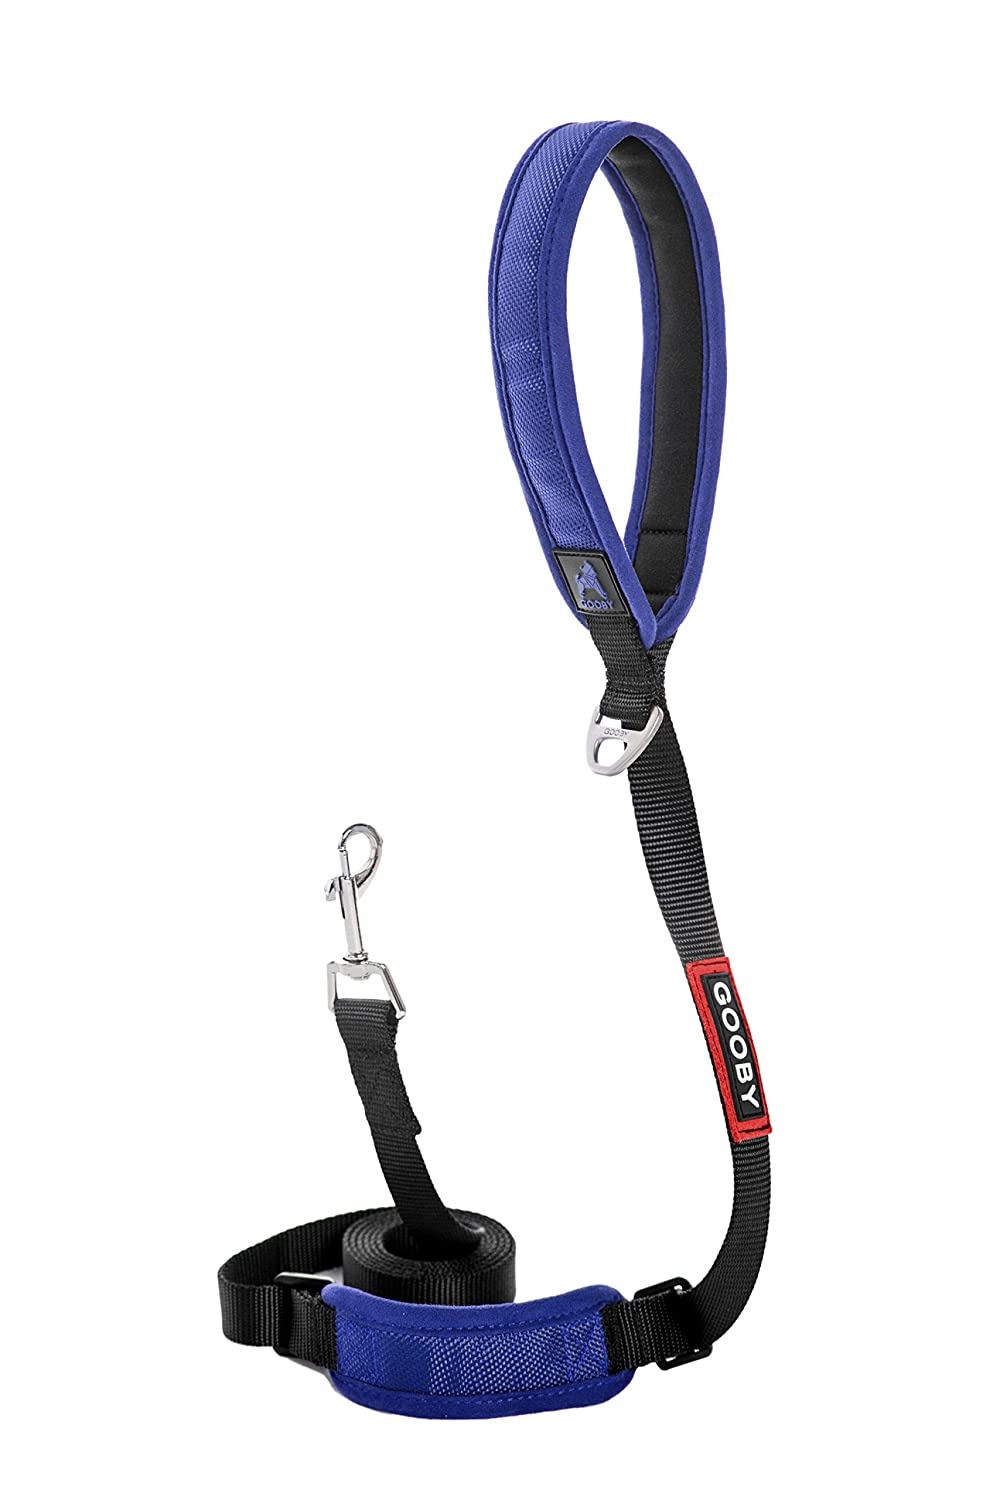 bluee Gooby Pioneer Leash, 6 Feet Padded Handle with Adjustable Traffic Control Short Handle Matchces with Pioneer Harness, bluee